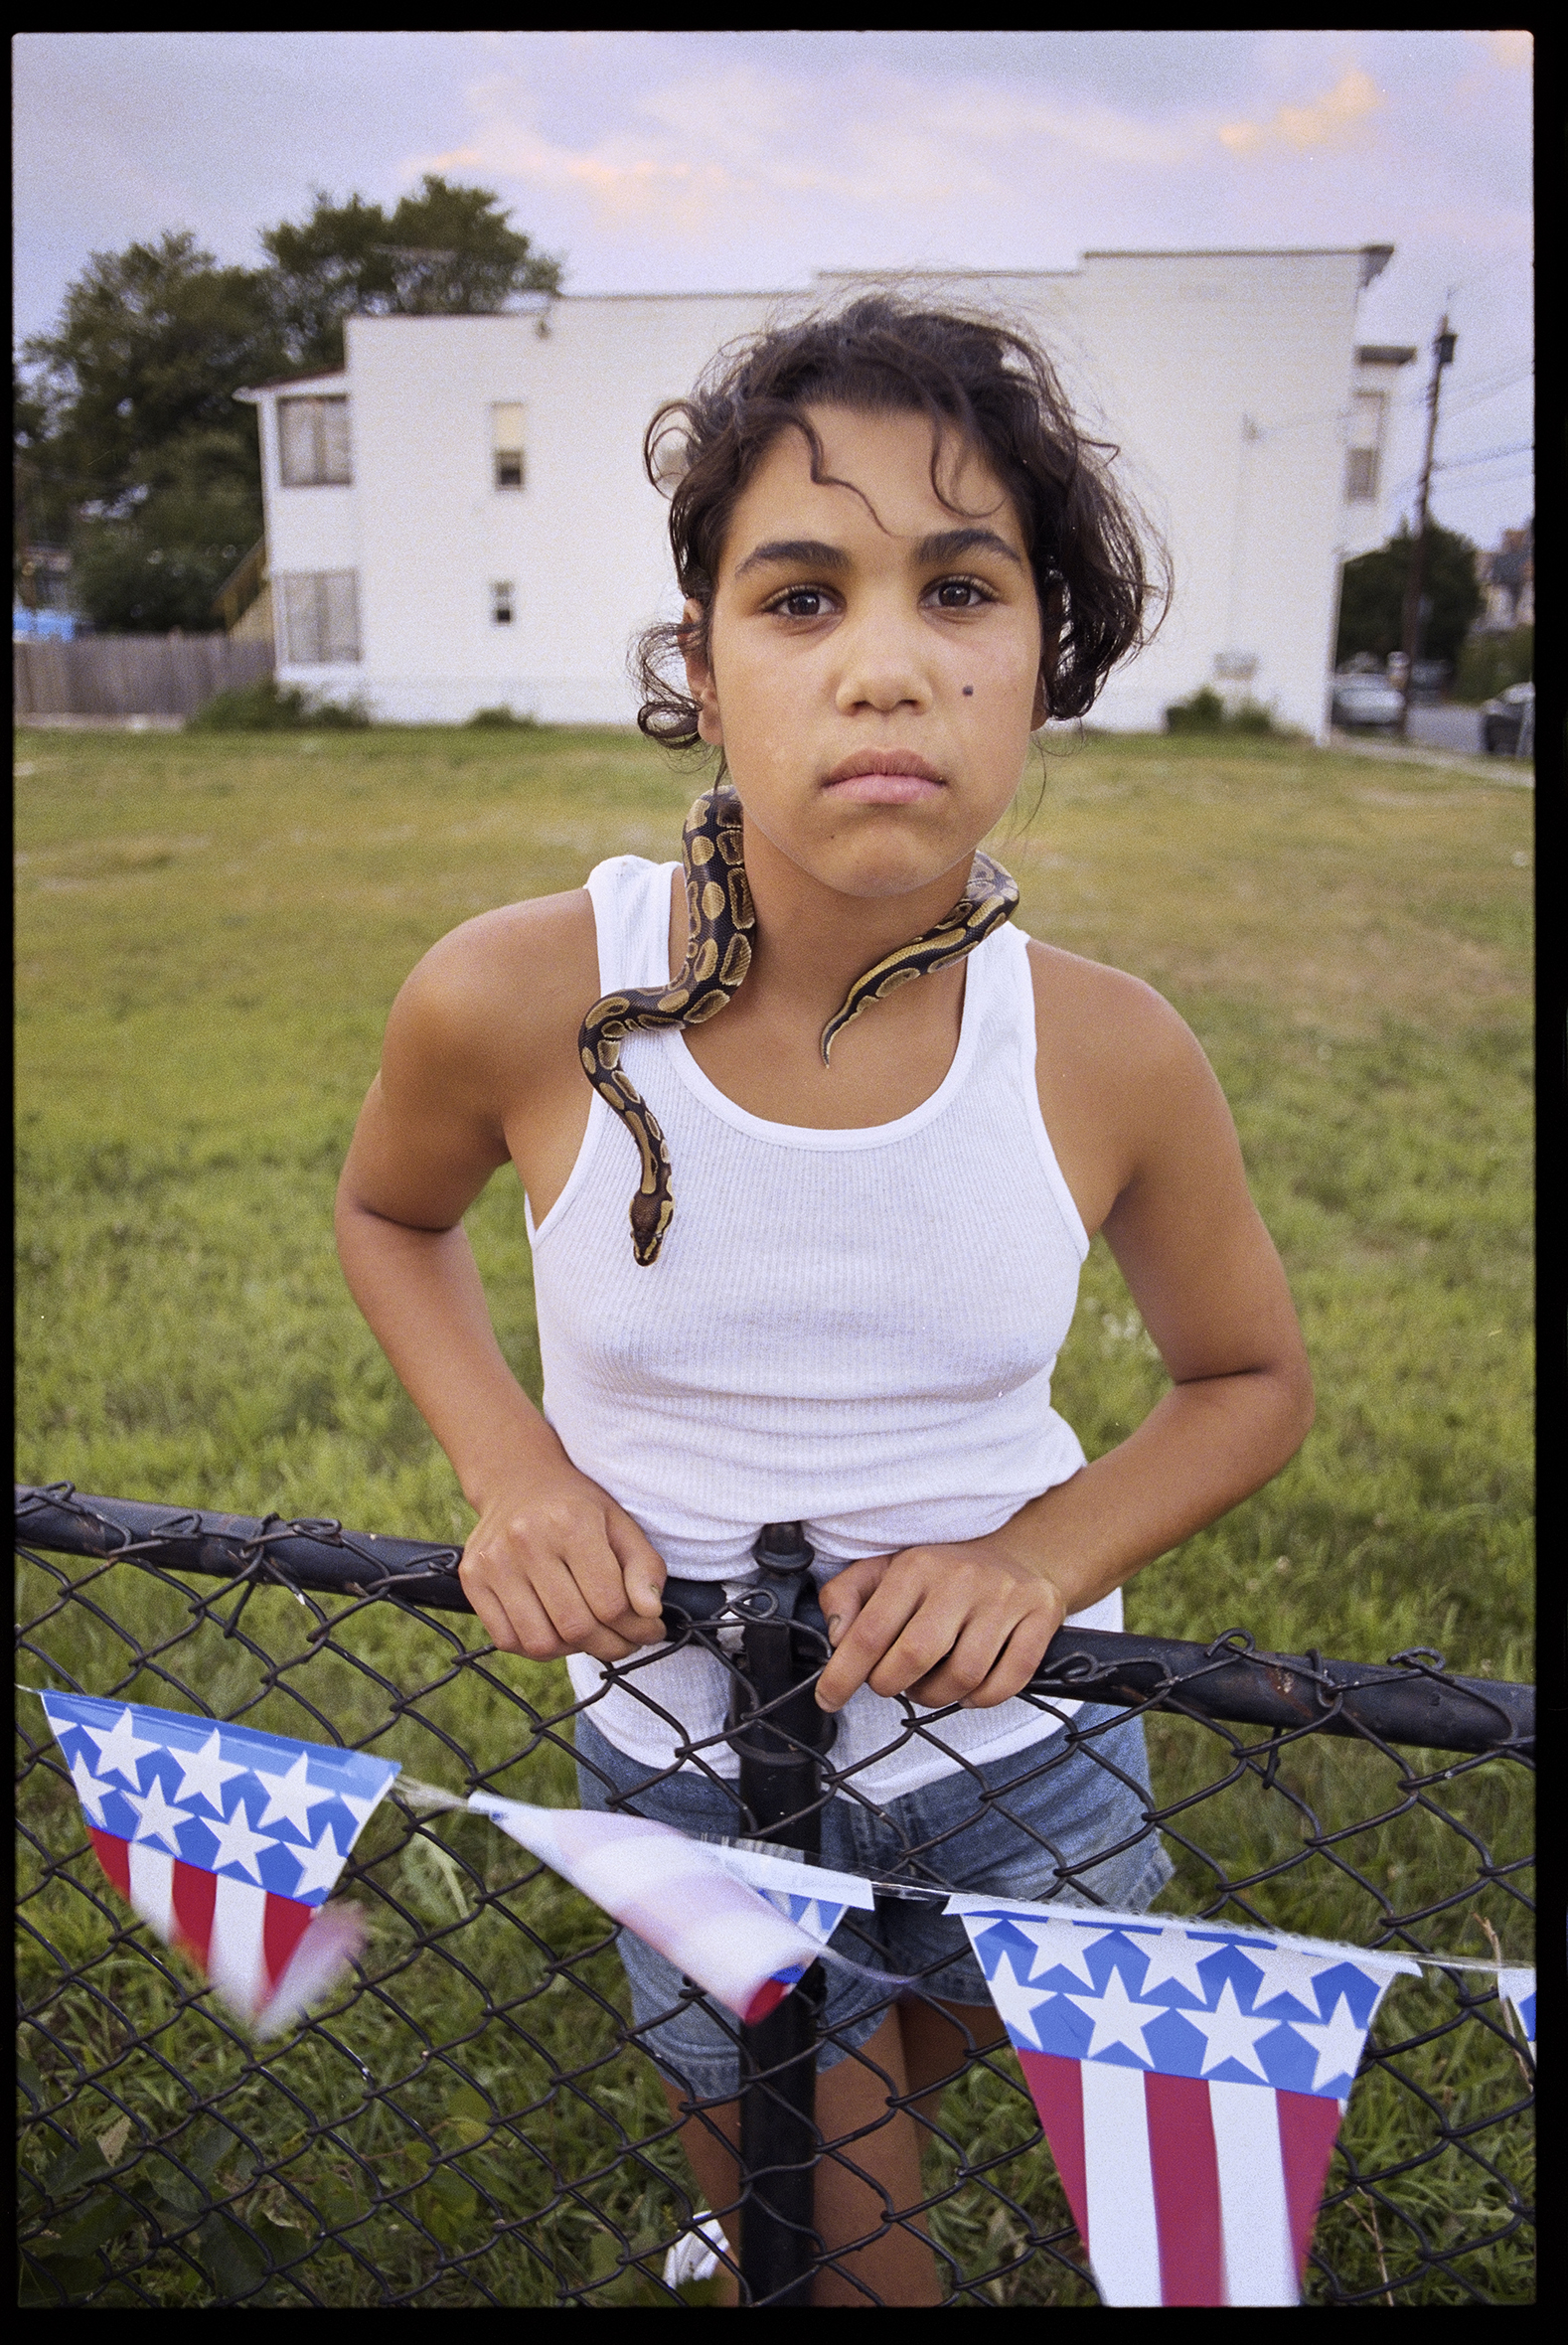 Brittany, Sixth Ave, North Troy, 2006.